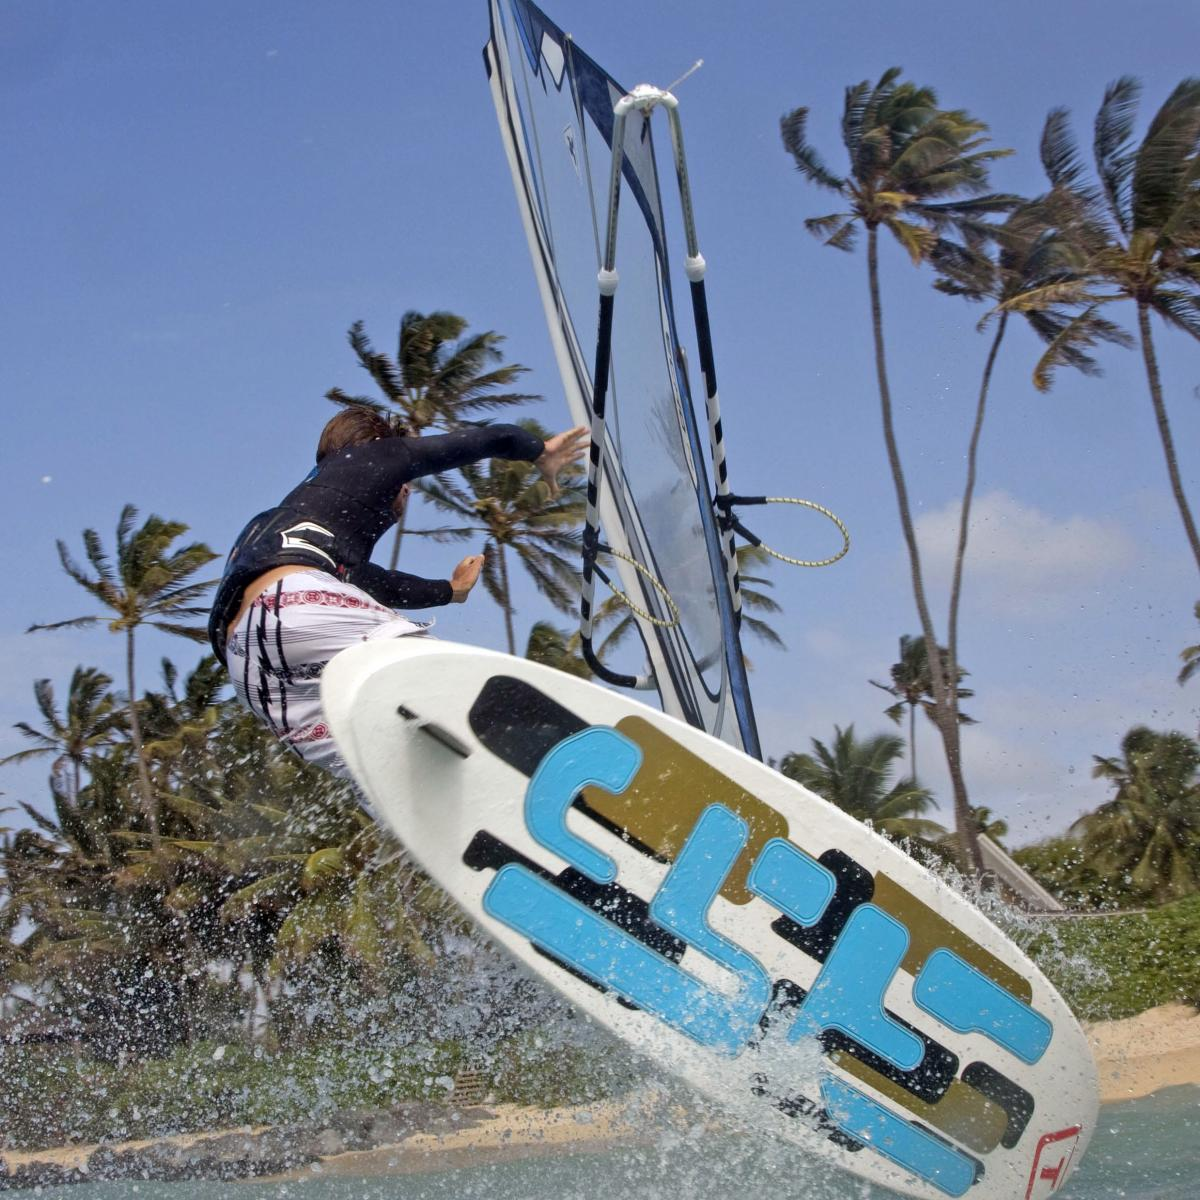 The 3 Style from Tabou board is tripple fun in only one surfboard.